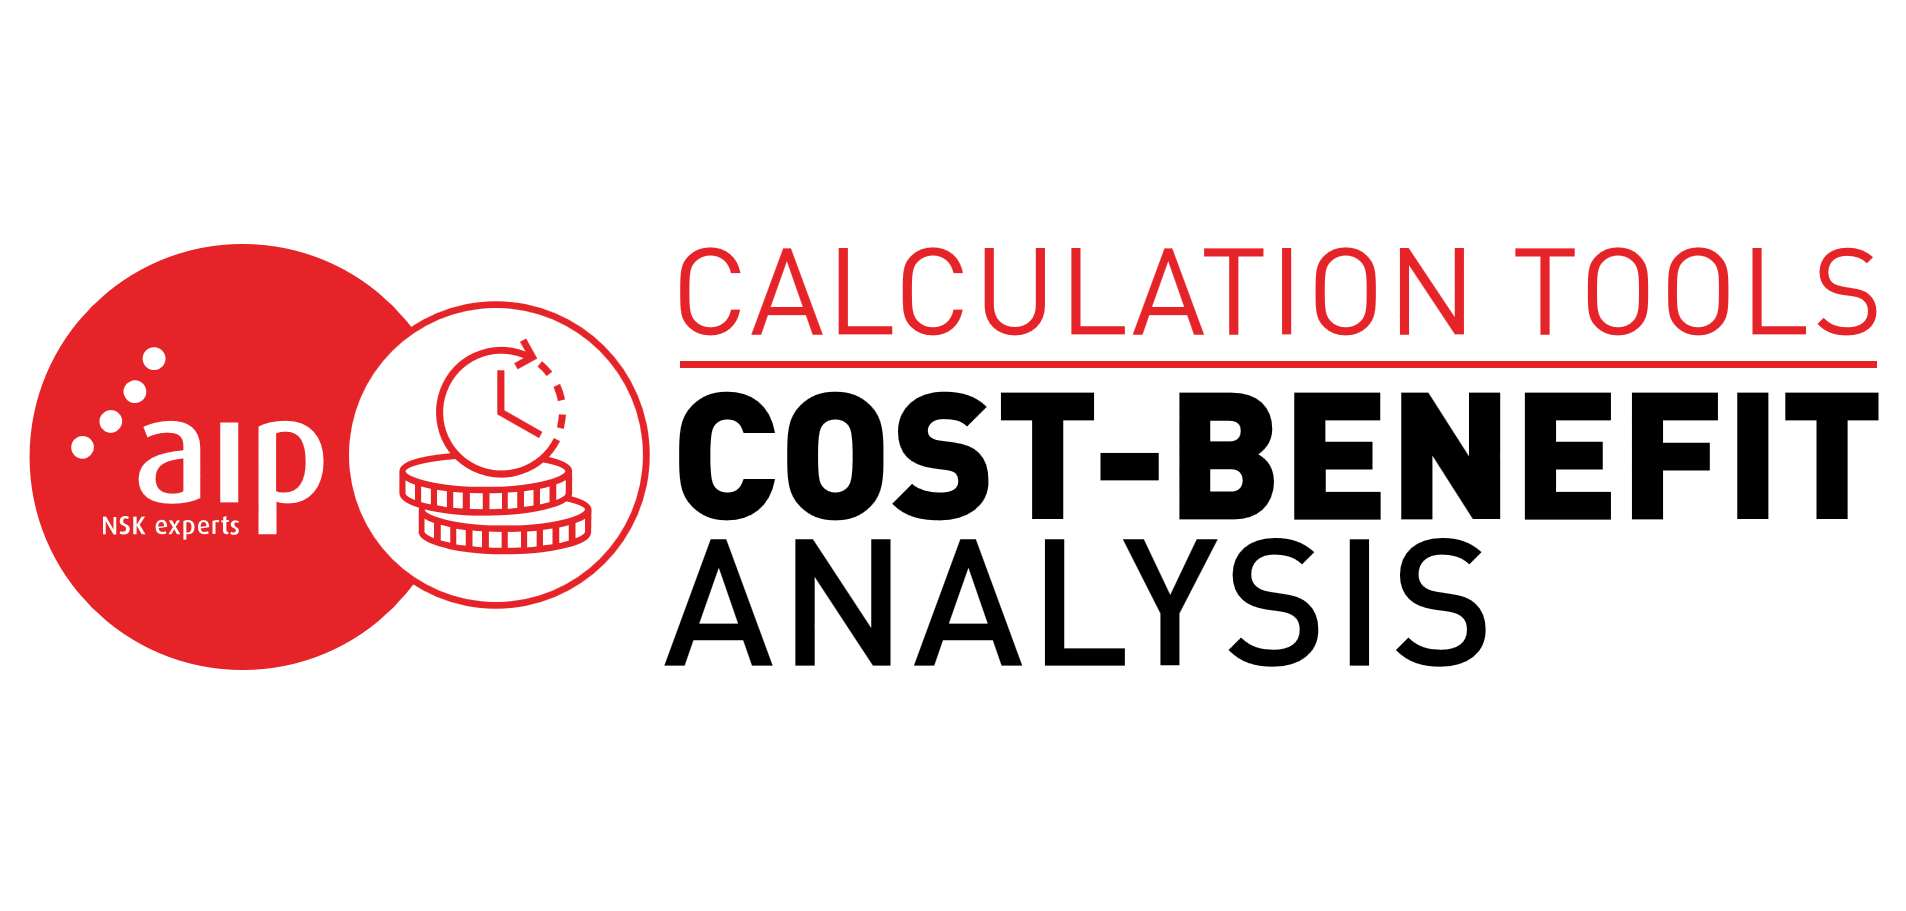 NSK Cost-Benefit Analysis